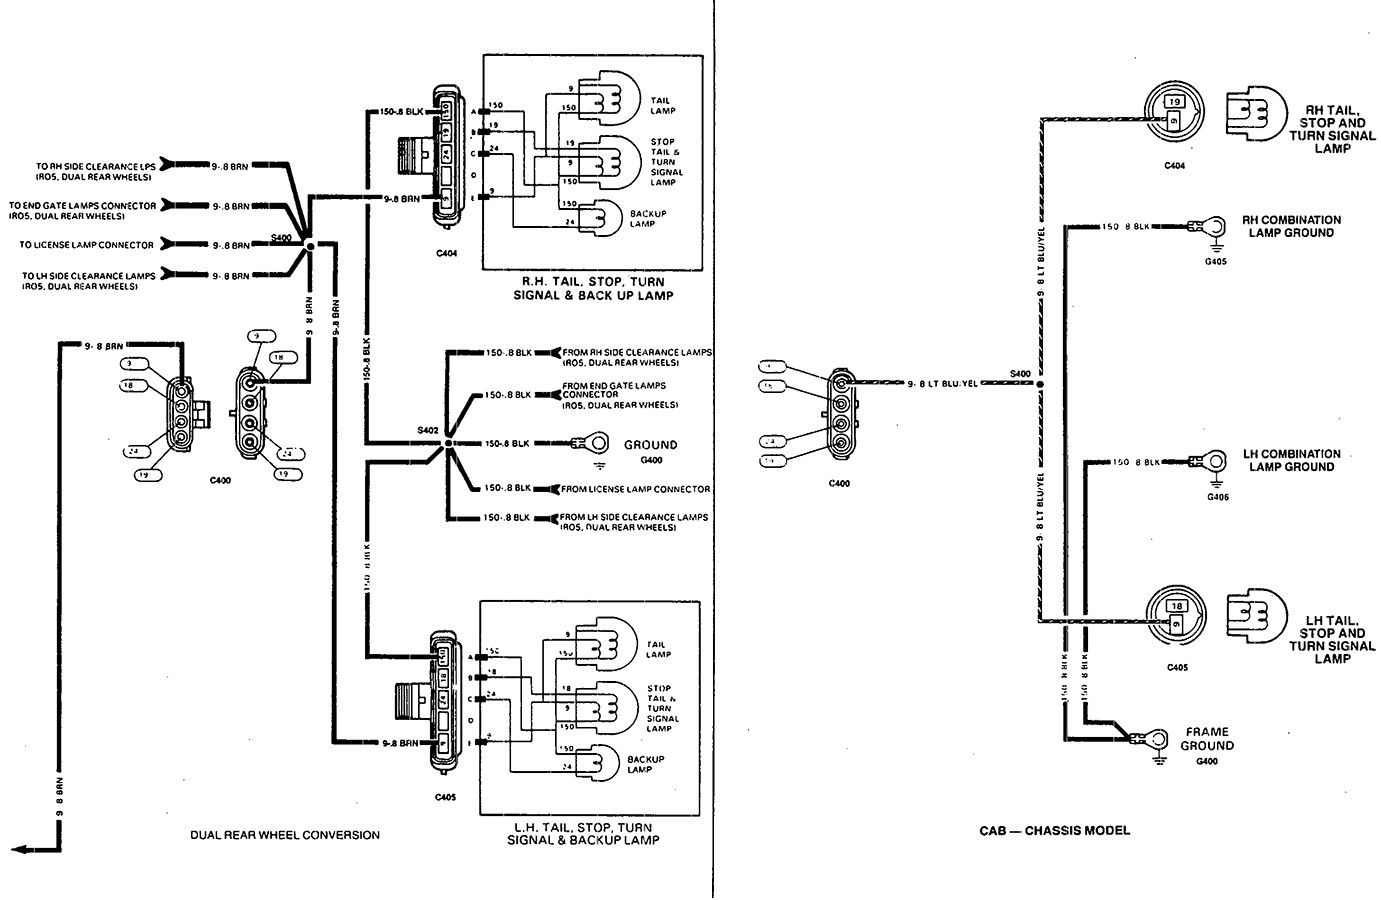 2000 ford F350 Tail Light Wiring Diagram | Wiring Diagram ...